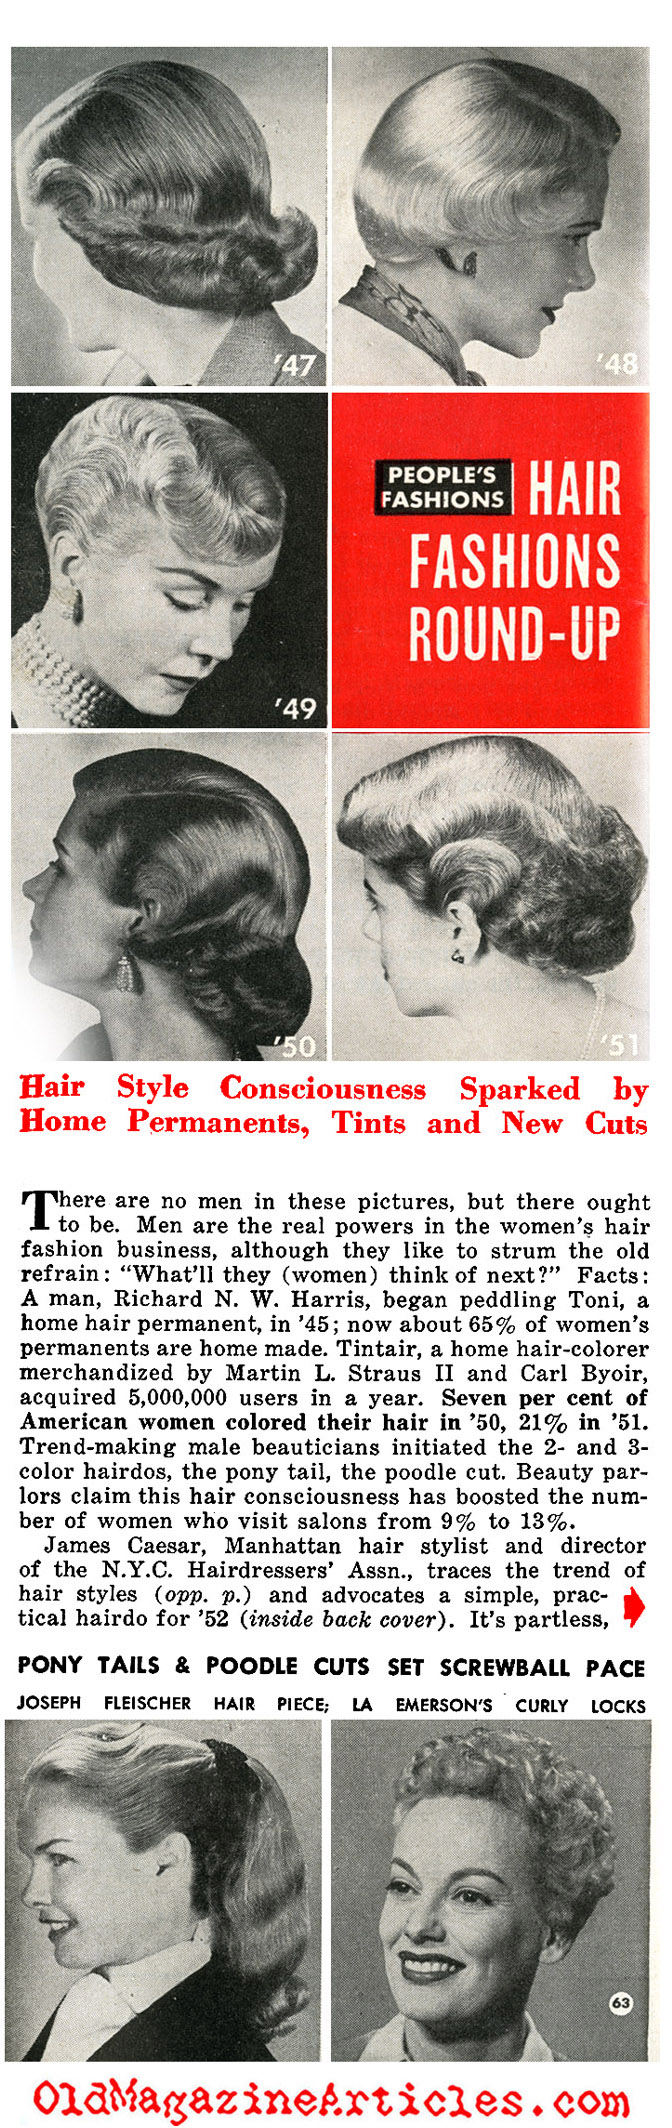 Hair Fashions of the Early 1950s (People Today, 1952)